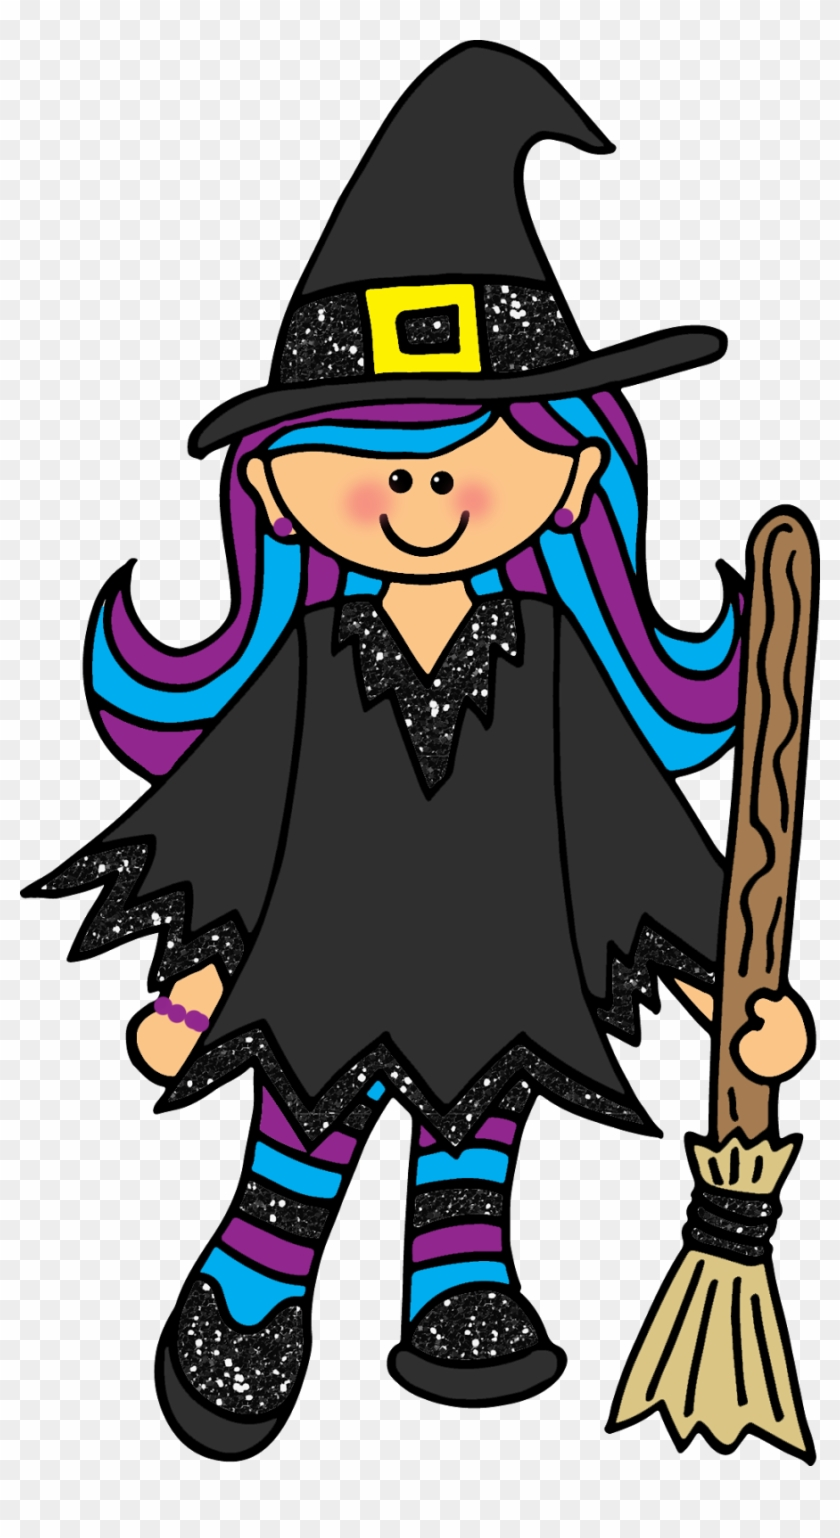 Witch clipart friendly witch. Free transparent